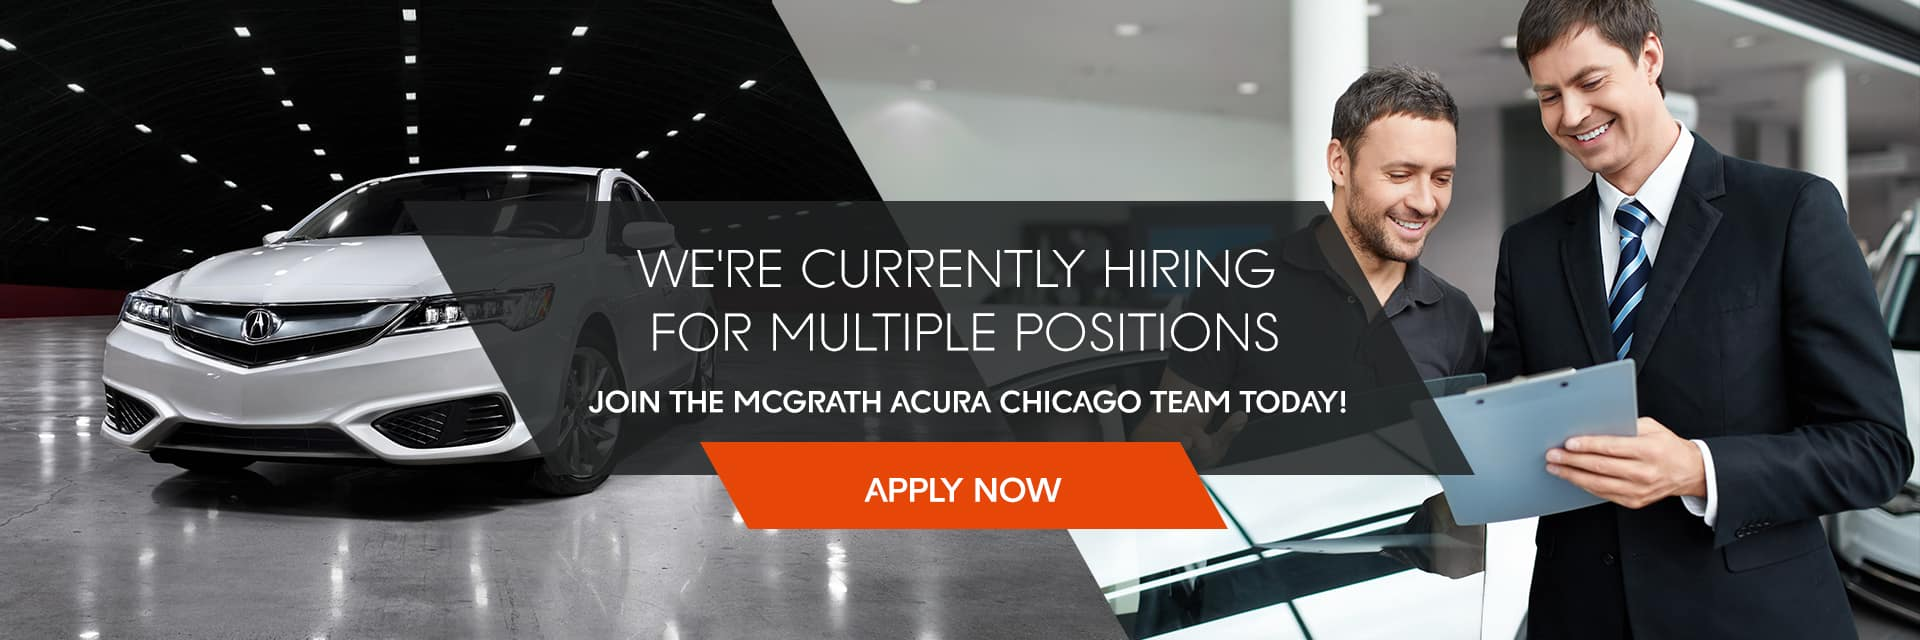 Join the McGrath Acura Chicago team